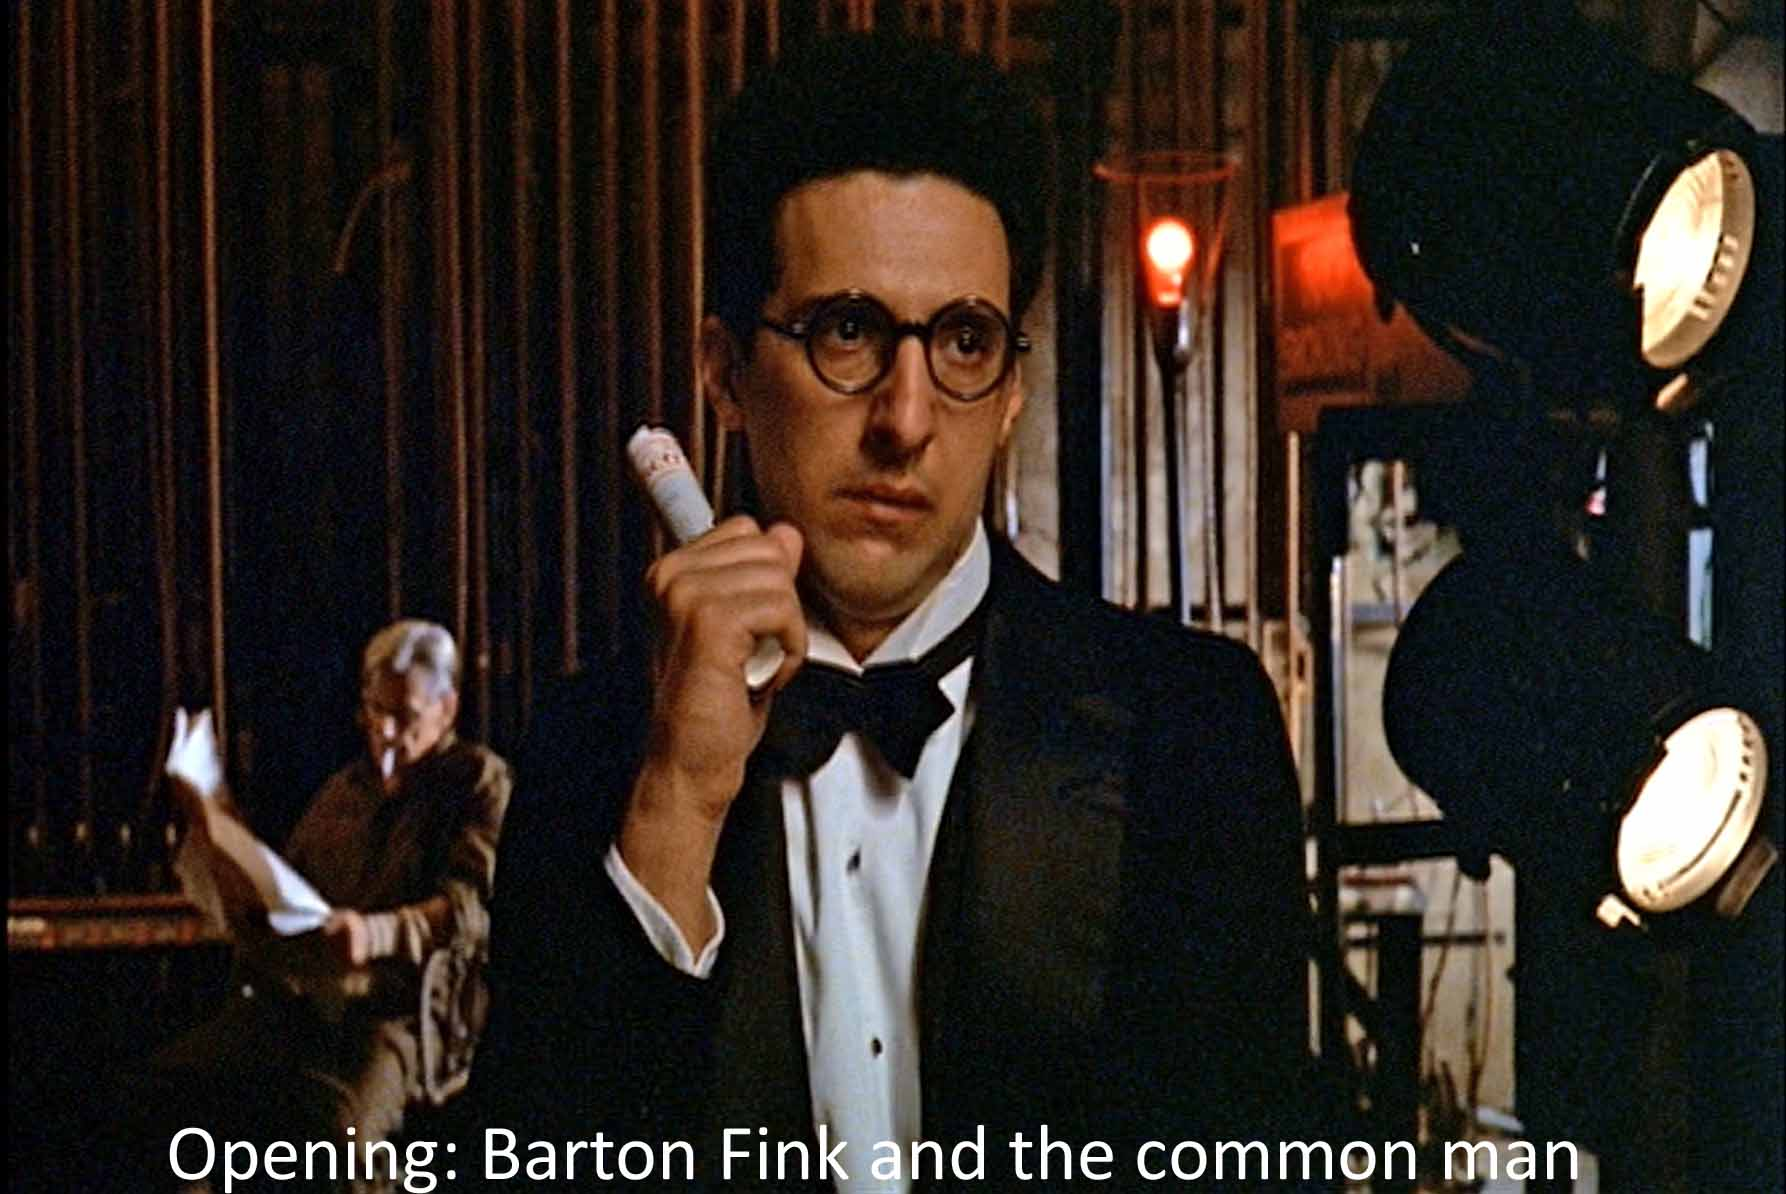 Opening: Barton Fink and the common man